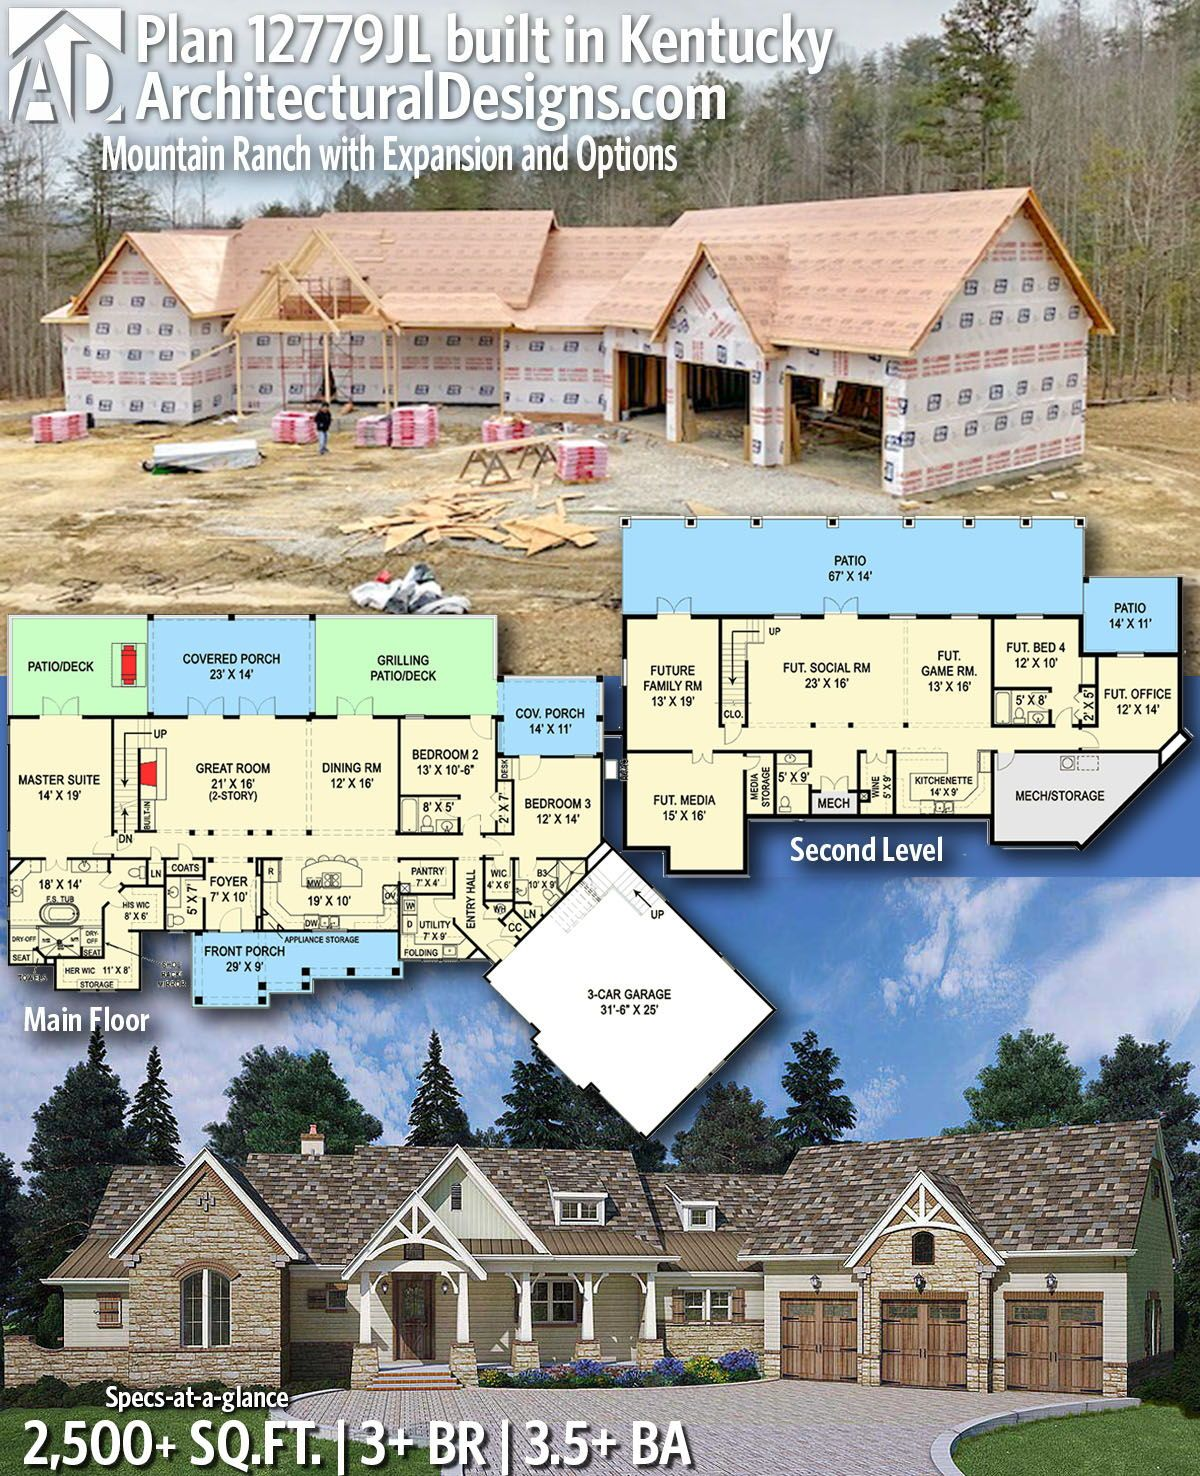 Architectural Designs Home Plan 12779jl Built In Kentucky This House Gives You 3 Bedrooms 3 5 Baths And 2 500 Sq Plan Zagorodnogo Doma Dom Zagorodnye Doma